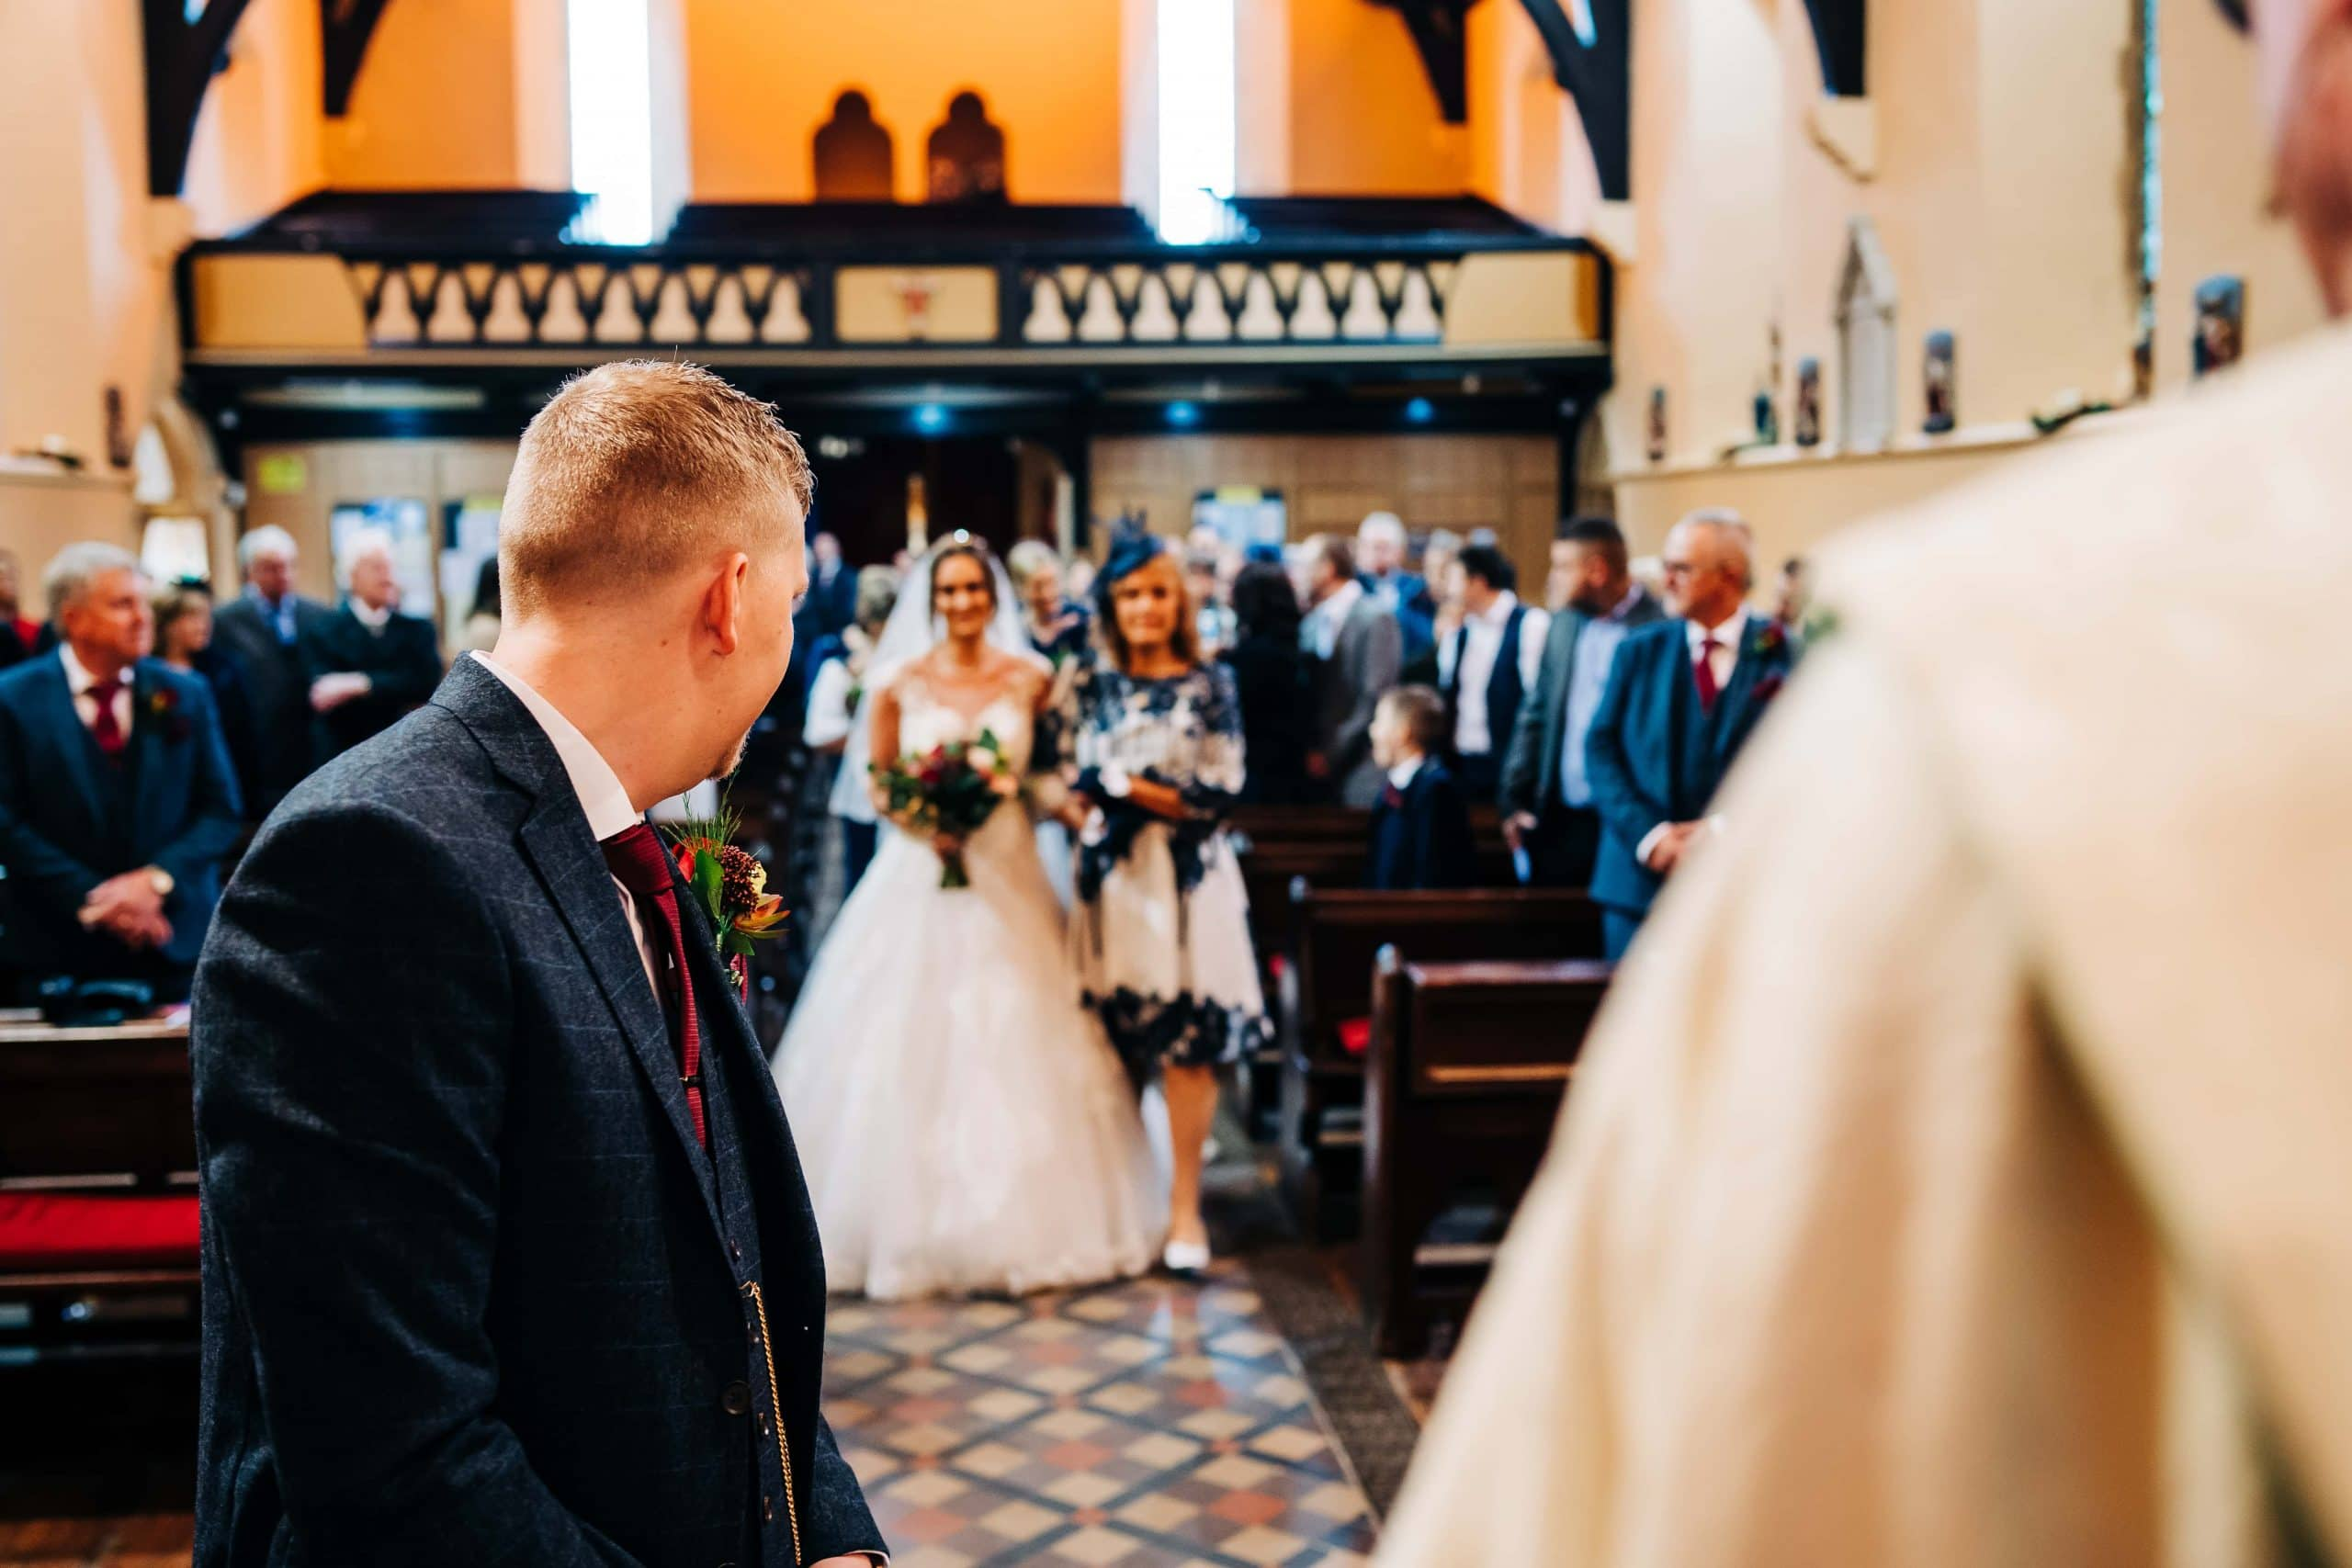 church wedding, bridal and groom, wedding day, local wedding photographer